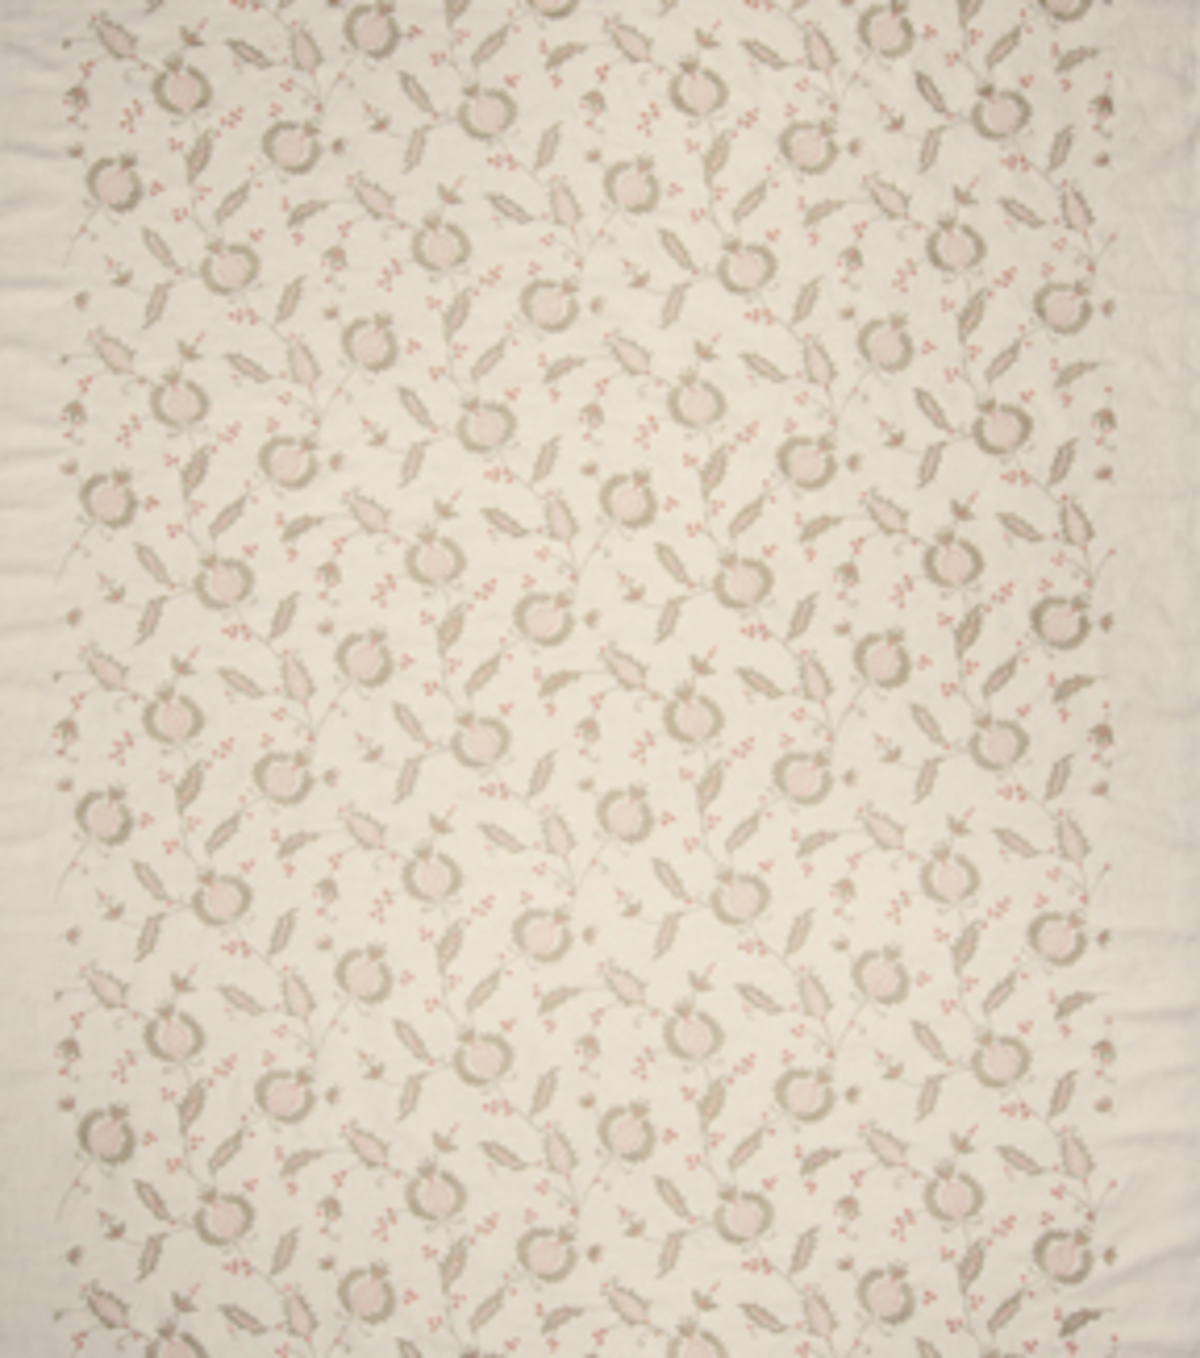 Home Decor 8\u0022x8\u0022 Fabric Swatch-French General  Friendship Rose